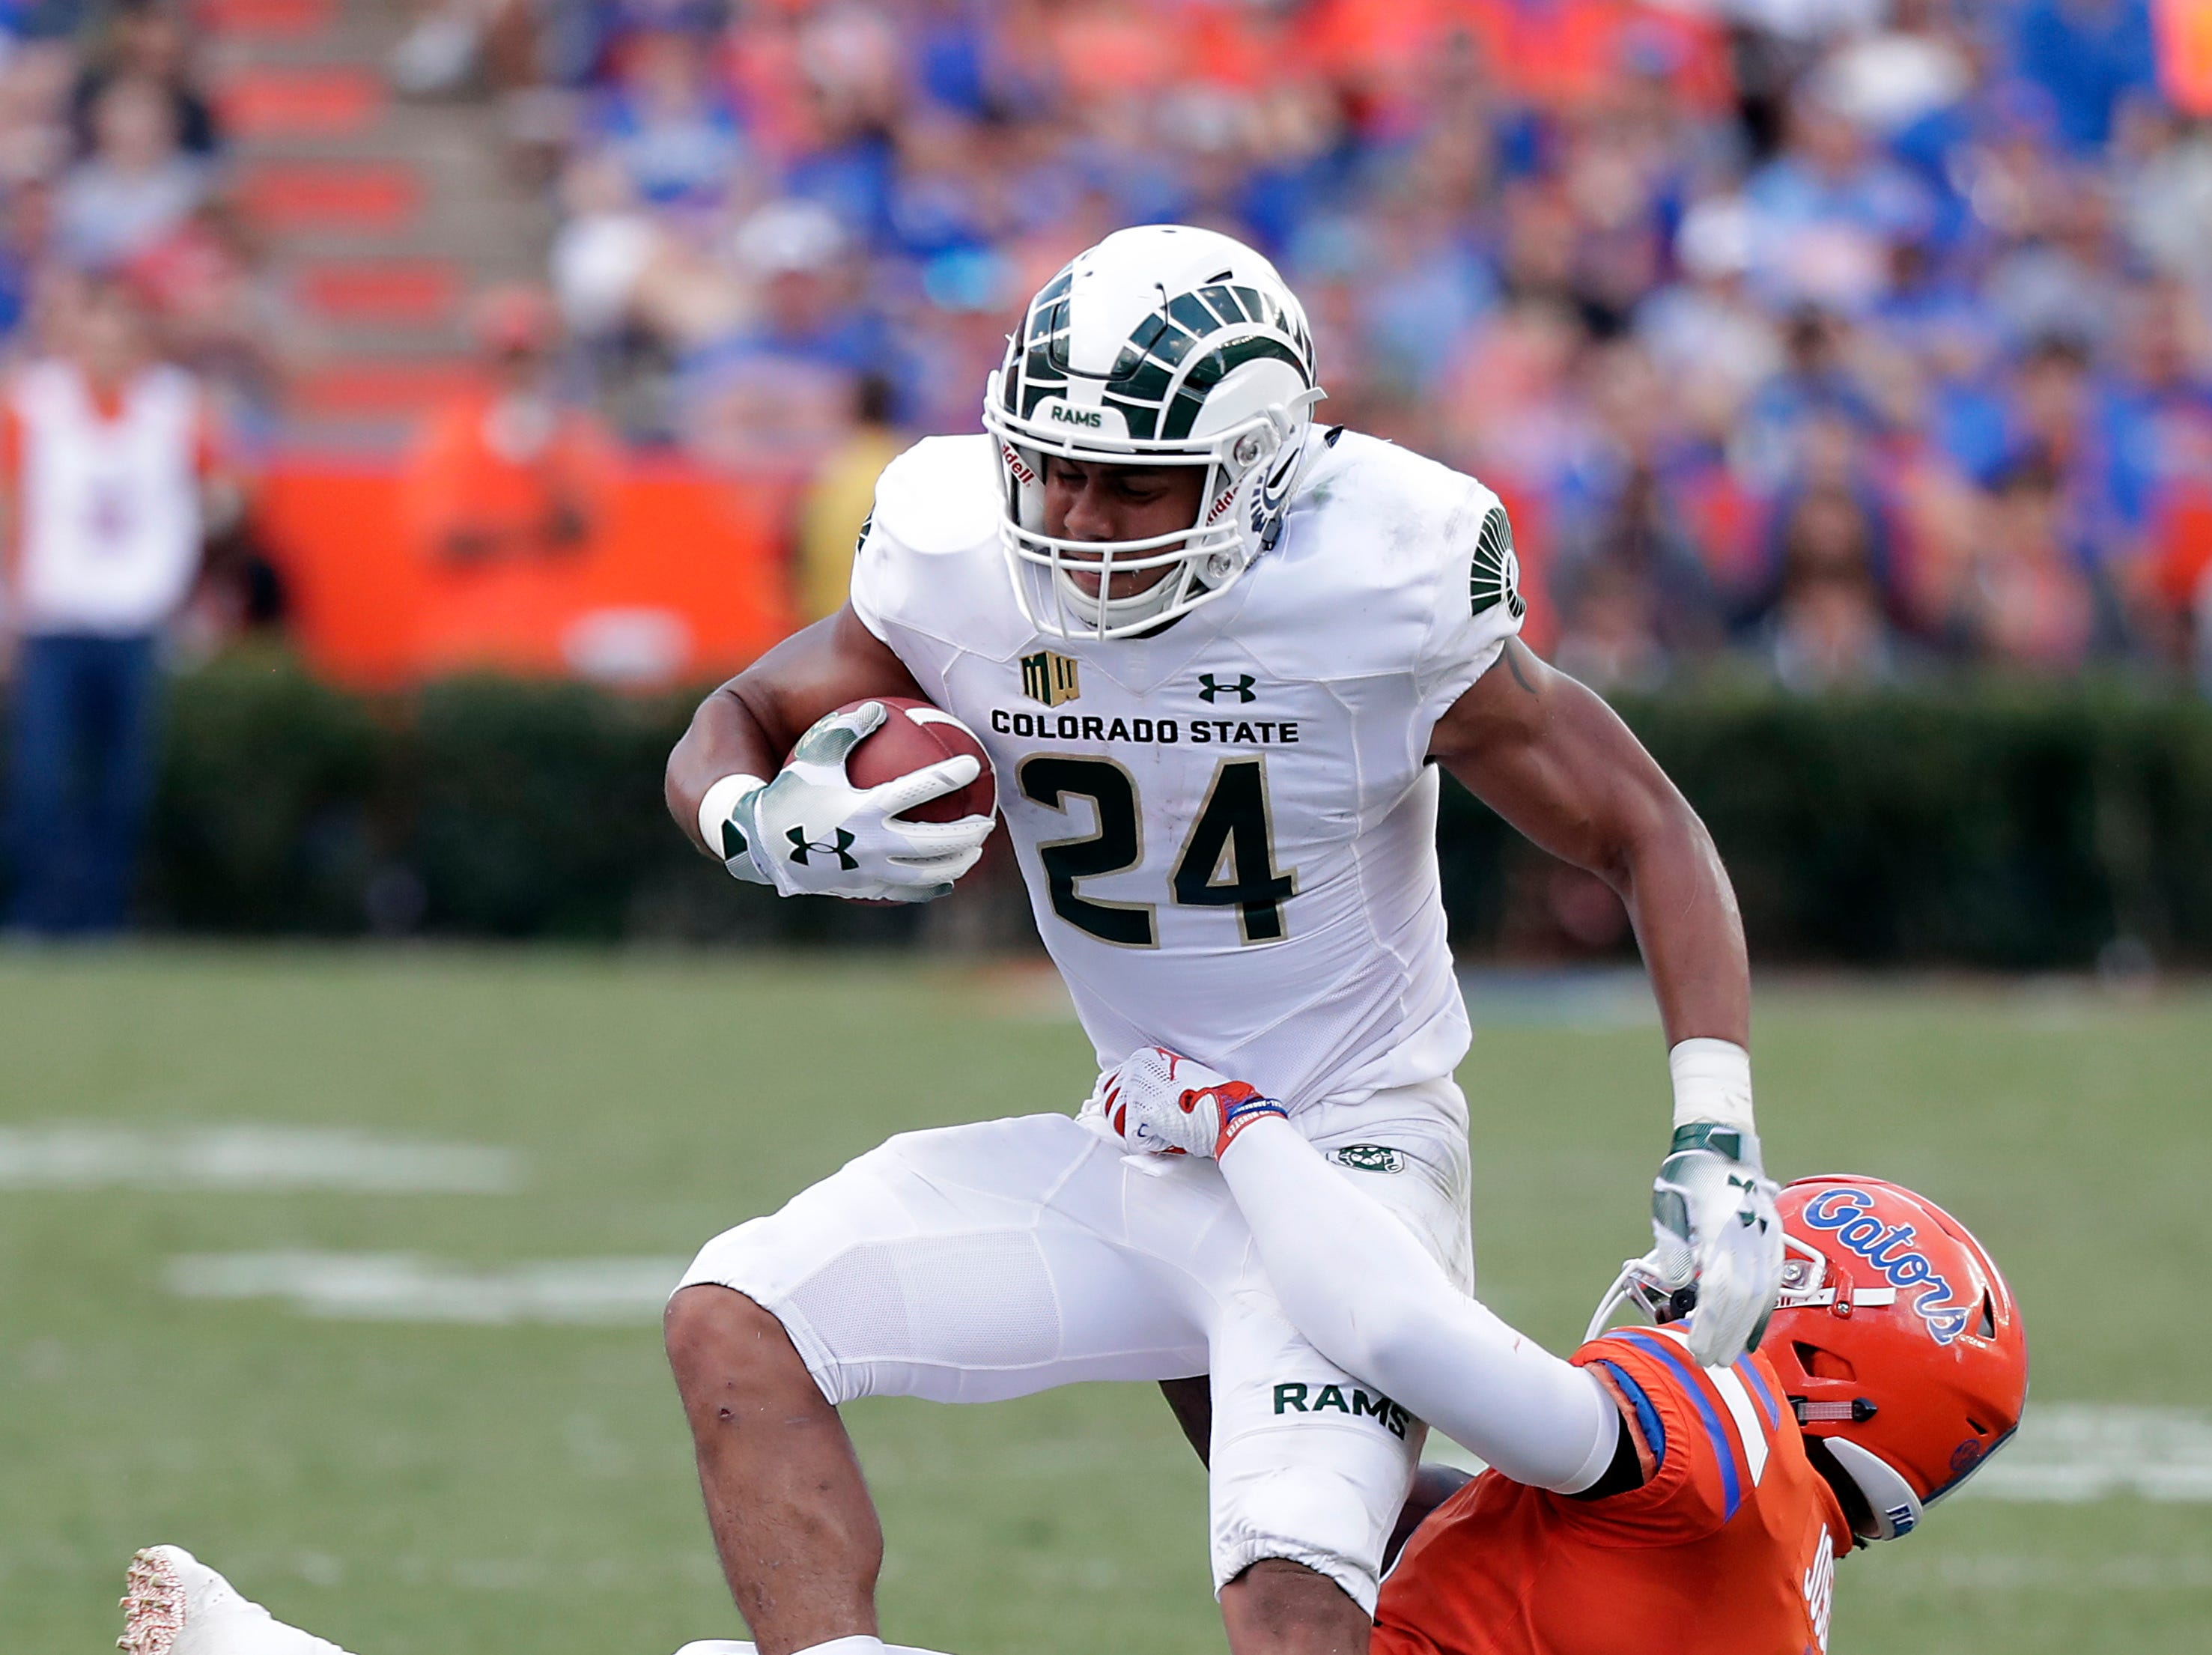 Colorado State running back Izzy Matthews (24) is stopped by Florida linebacker Vosean Joseph for no gain after a reception during the first half of an NCAA college football game, Saturday, Sept. 15, 2018, in Gainesville, Fla. (AP Photo/John Raoux)